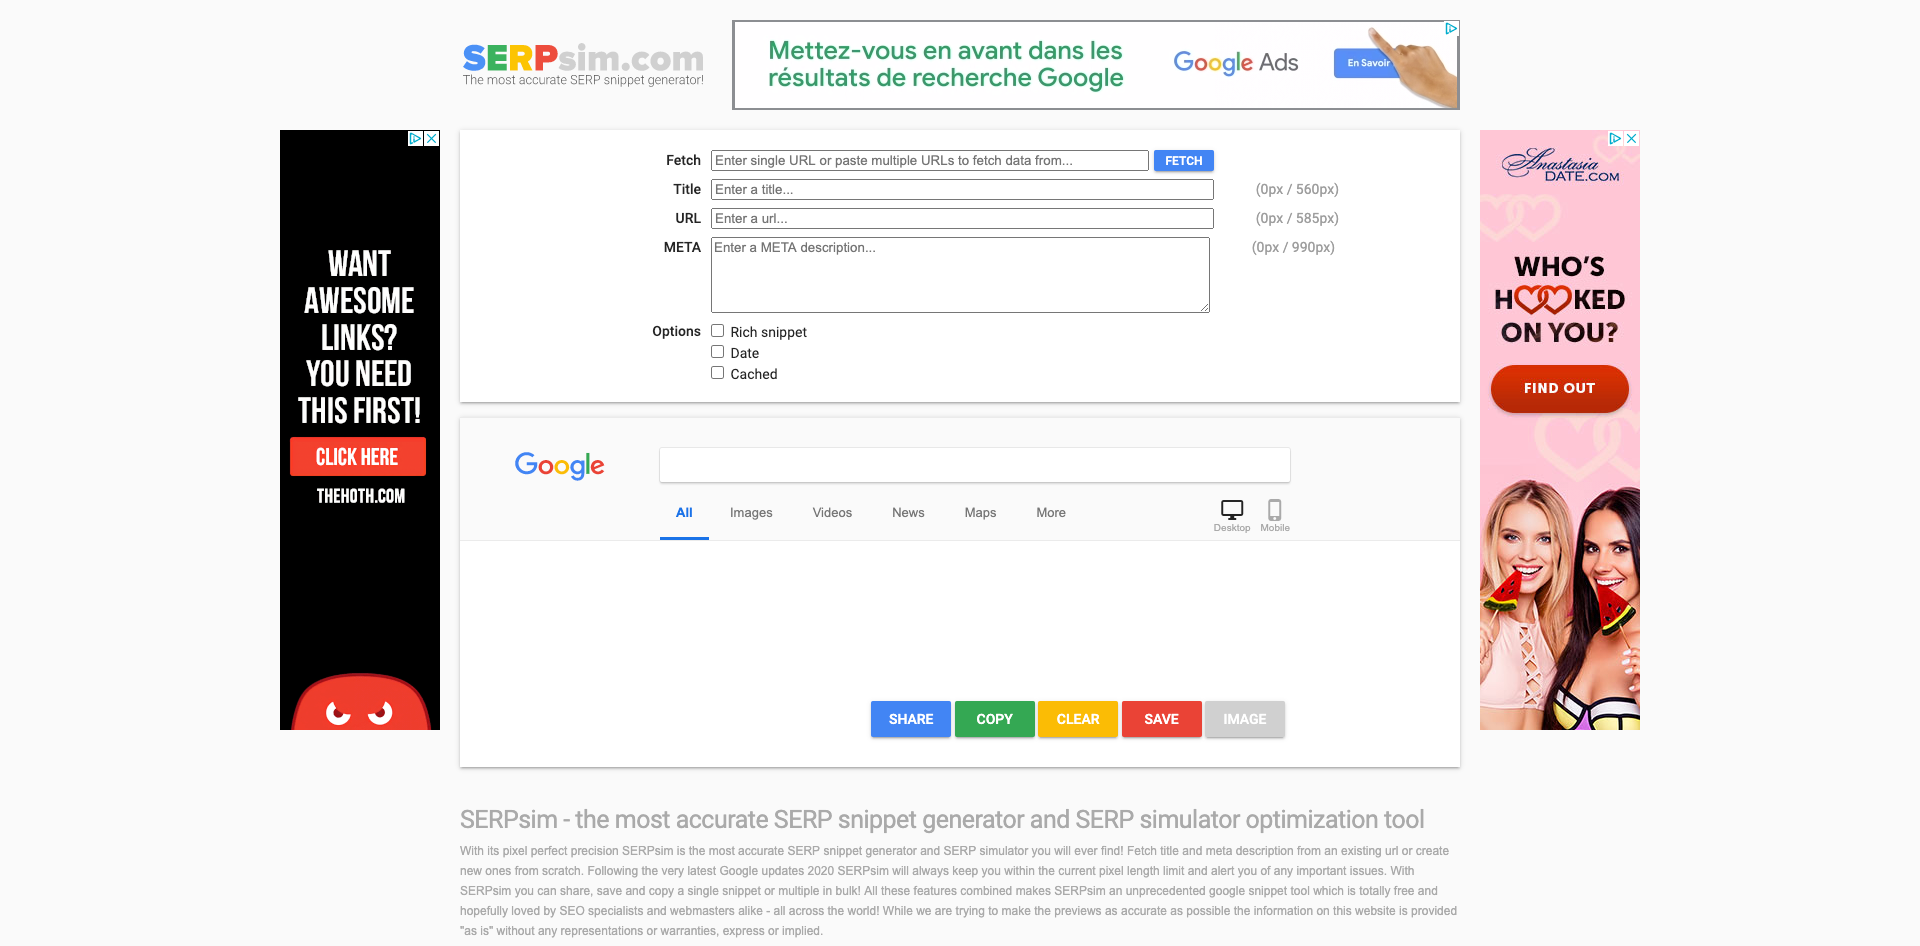 SERPsim - the most accurate SERP snippet generator and SERP simulator optimization tool